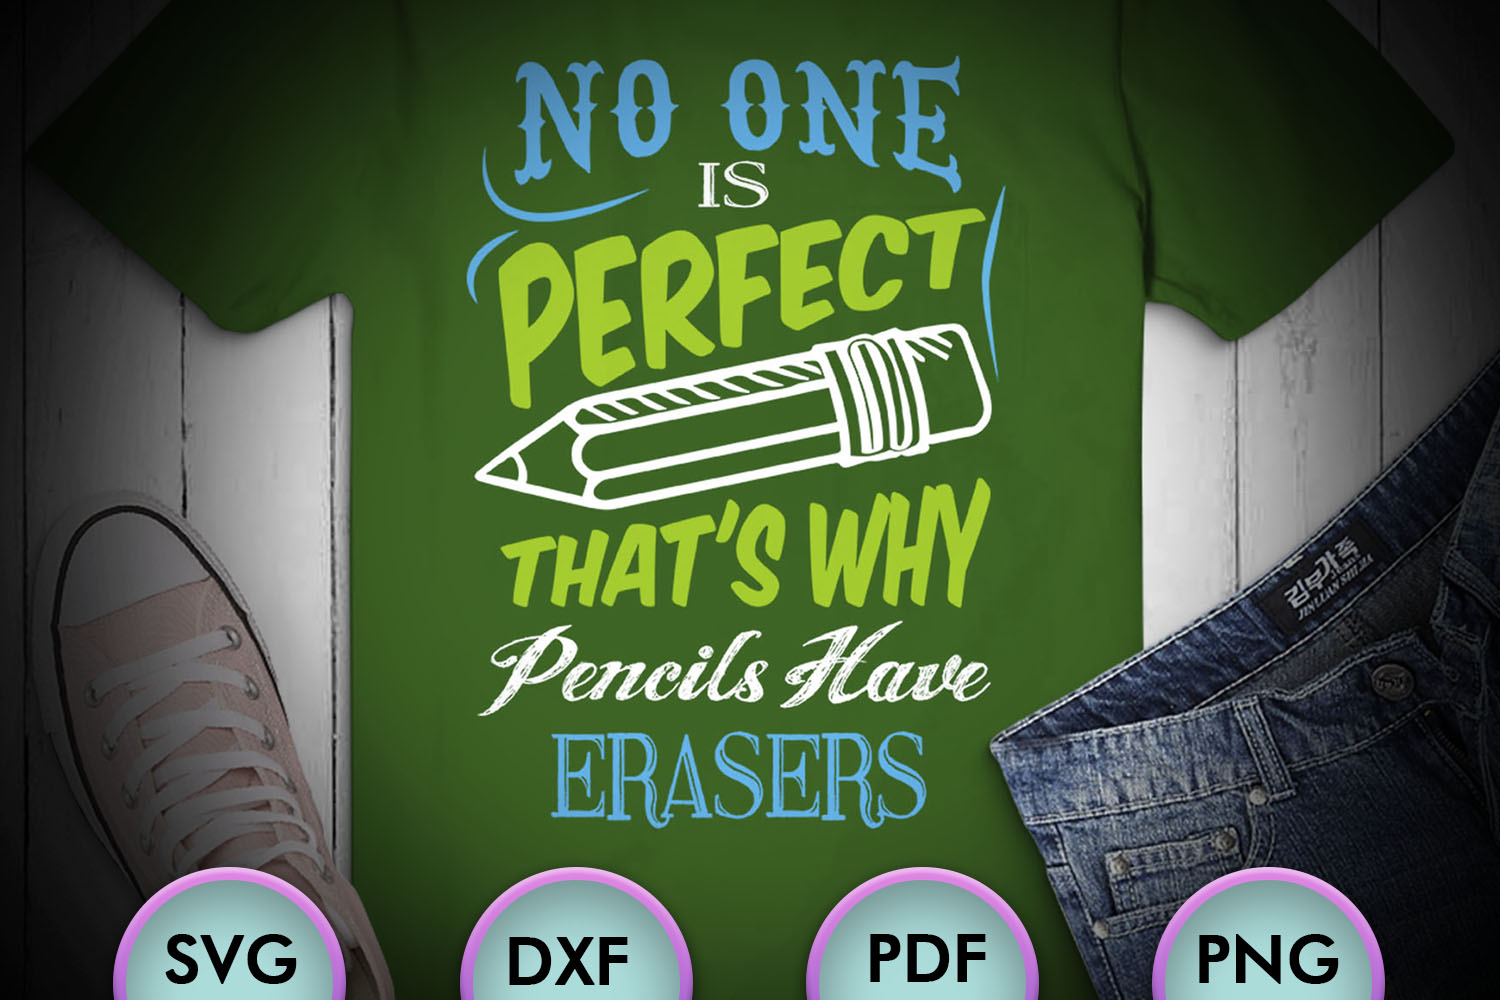 No One Is Perfect That's Why Pencils Have Erasers, SVG example image 1